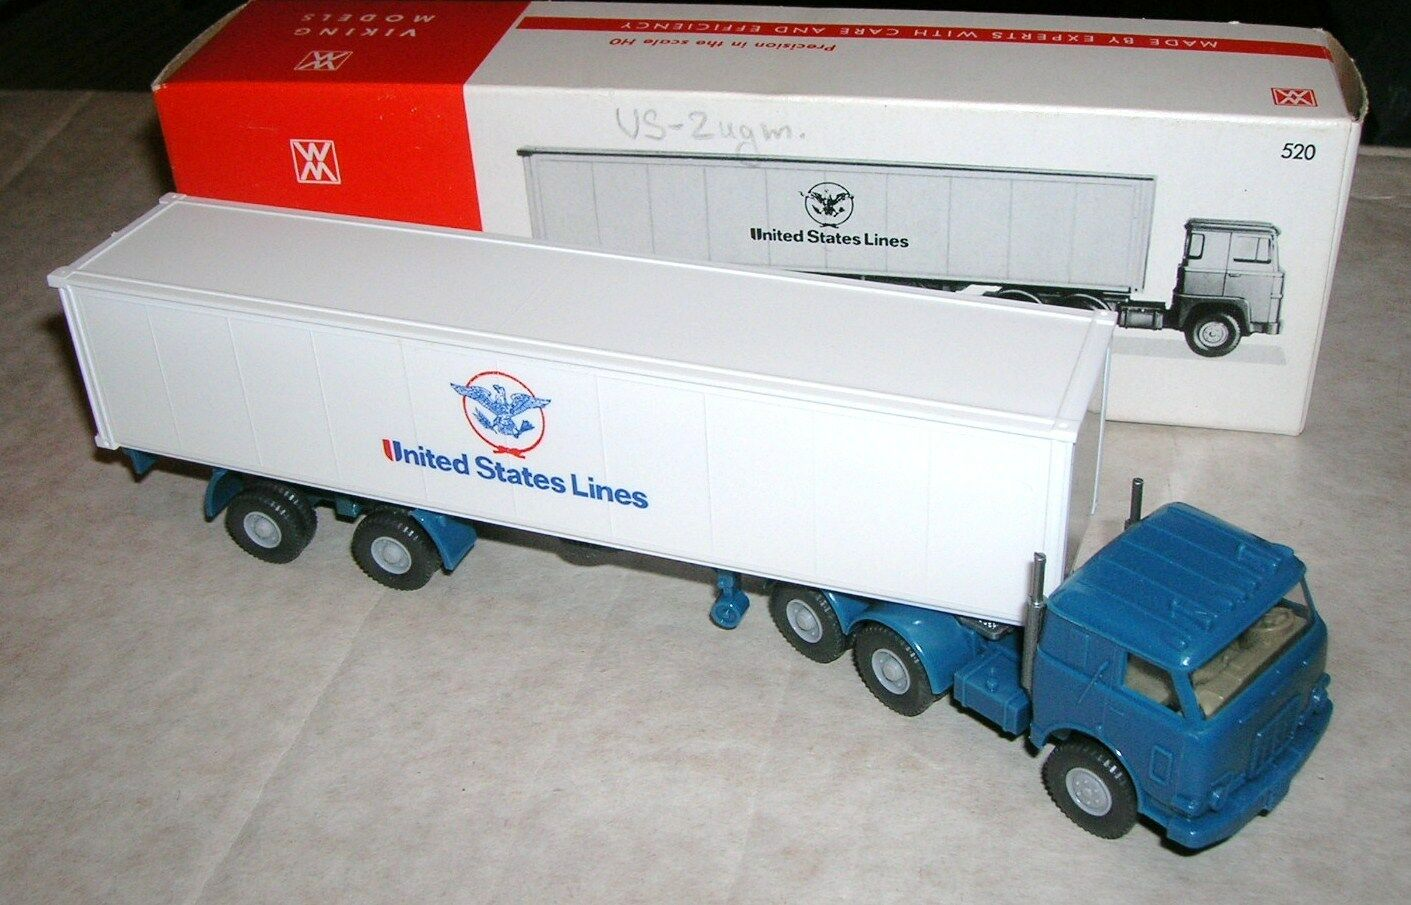 Wiking camion remorques nº 520 united states lines us tracteur Mint & OVP